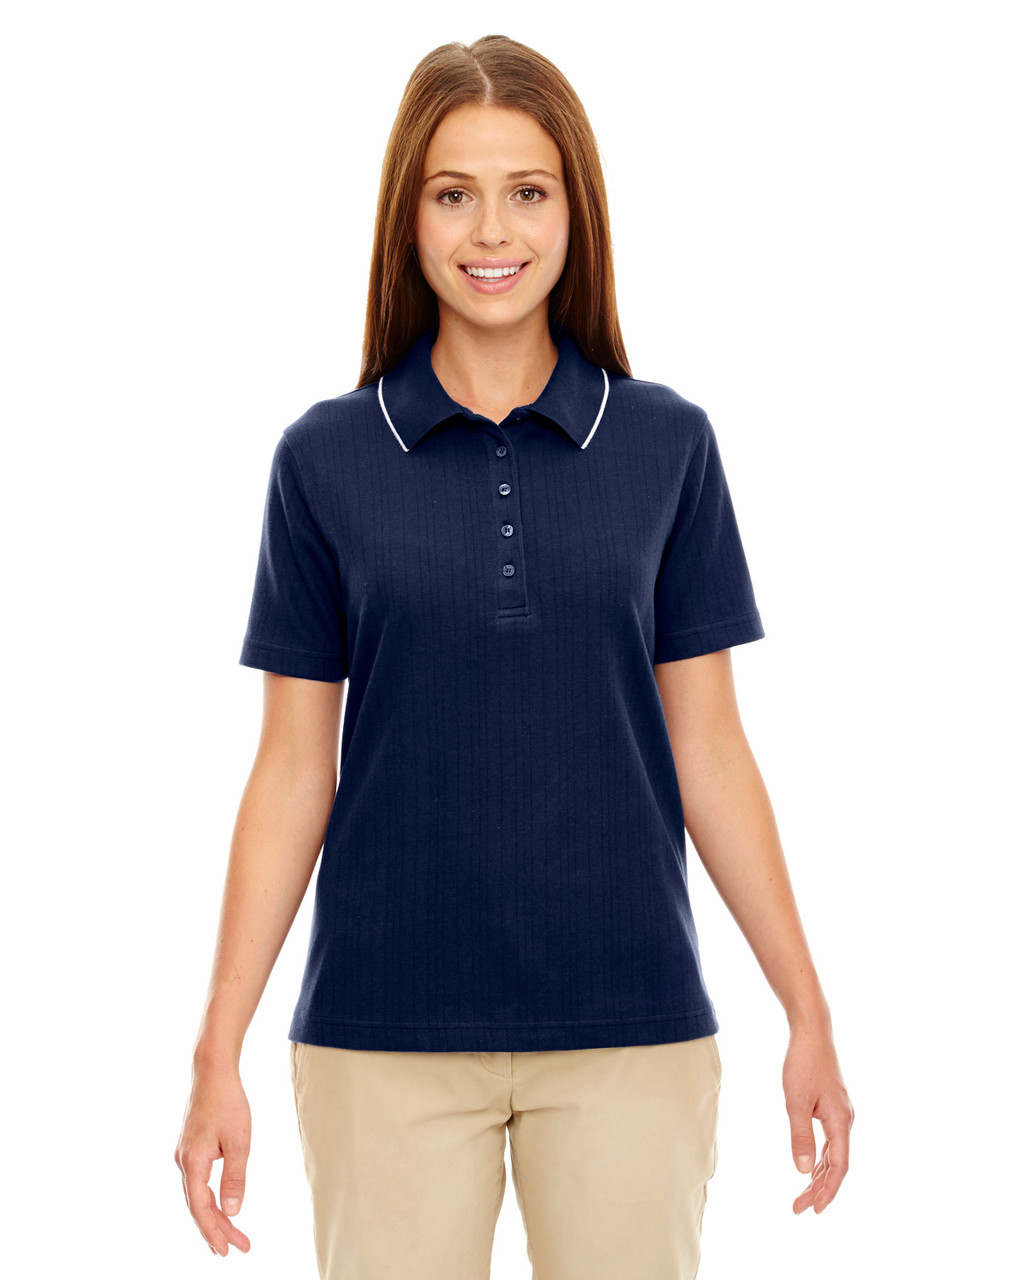 Classic Navy - 75045 Extreme Ladies' Edry™ Needle Out Interlock Polo Shirt | BlankClothing.ca